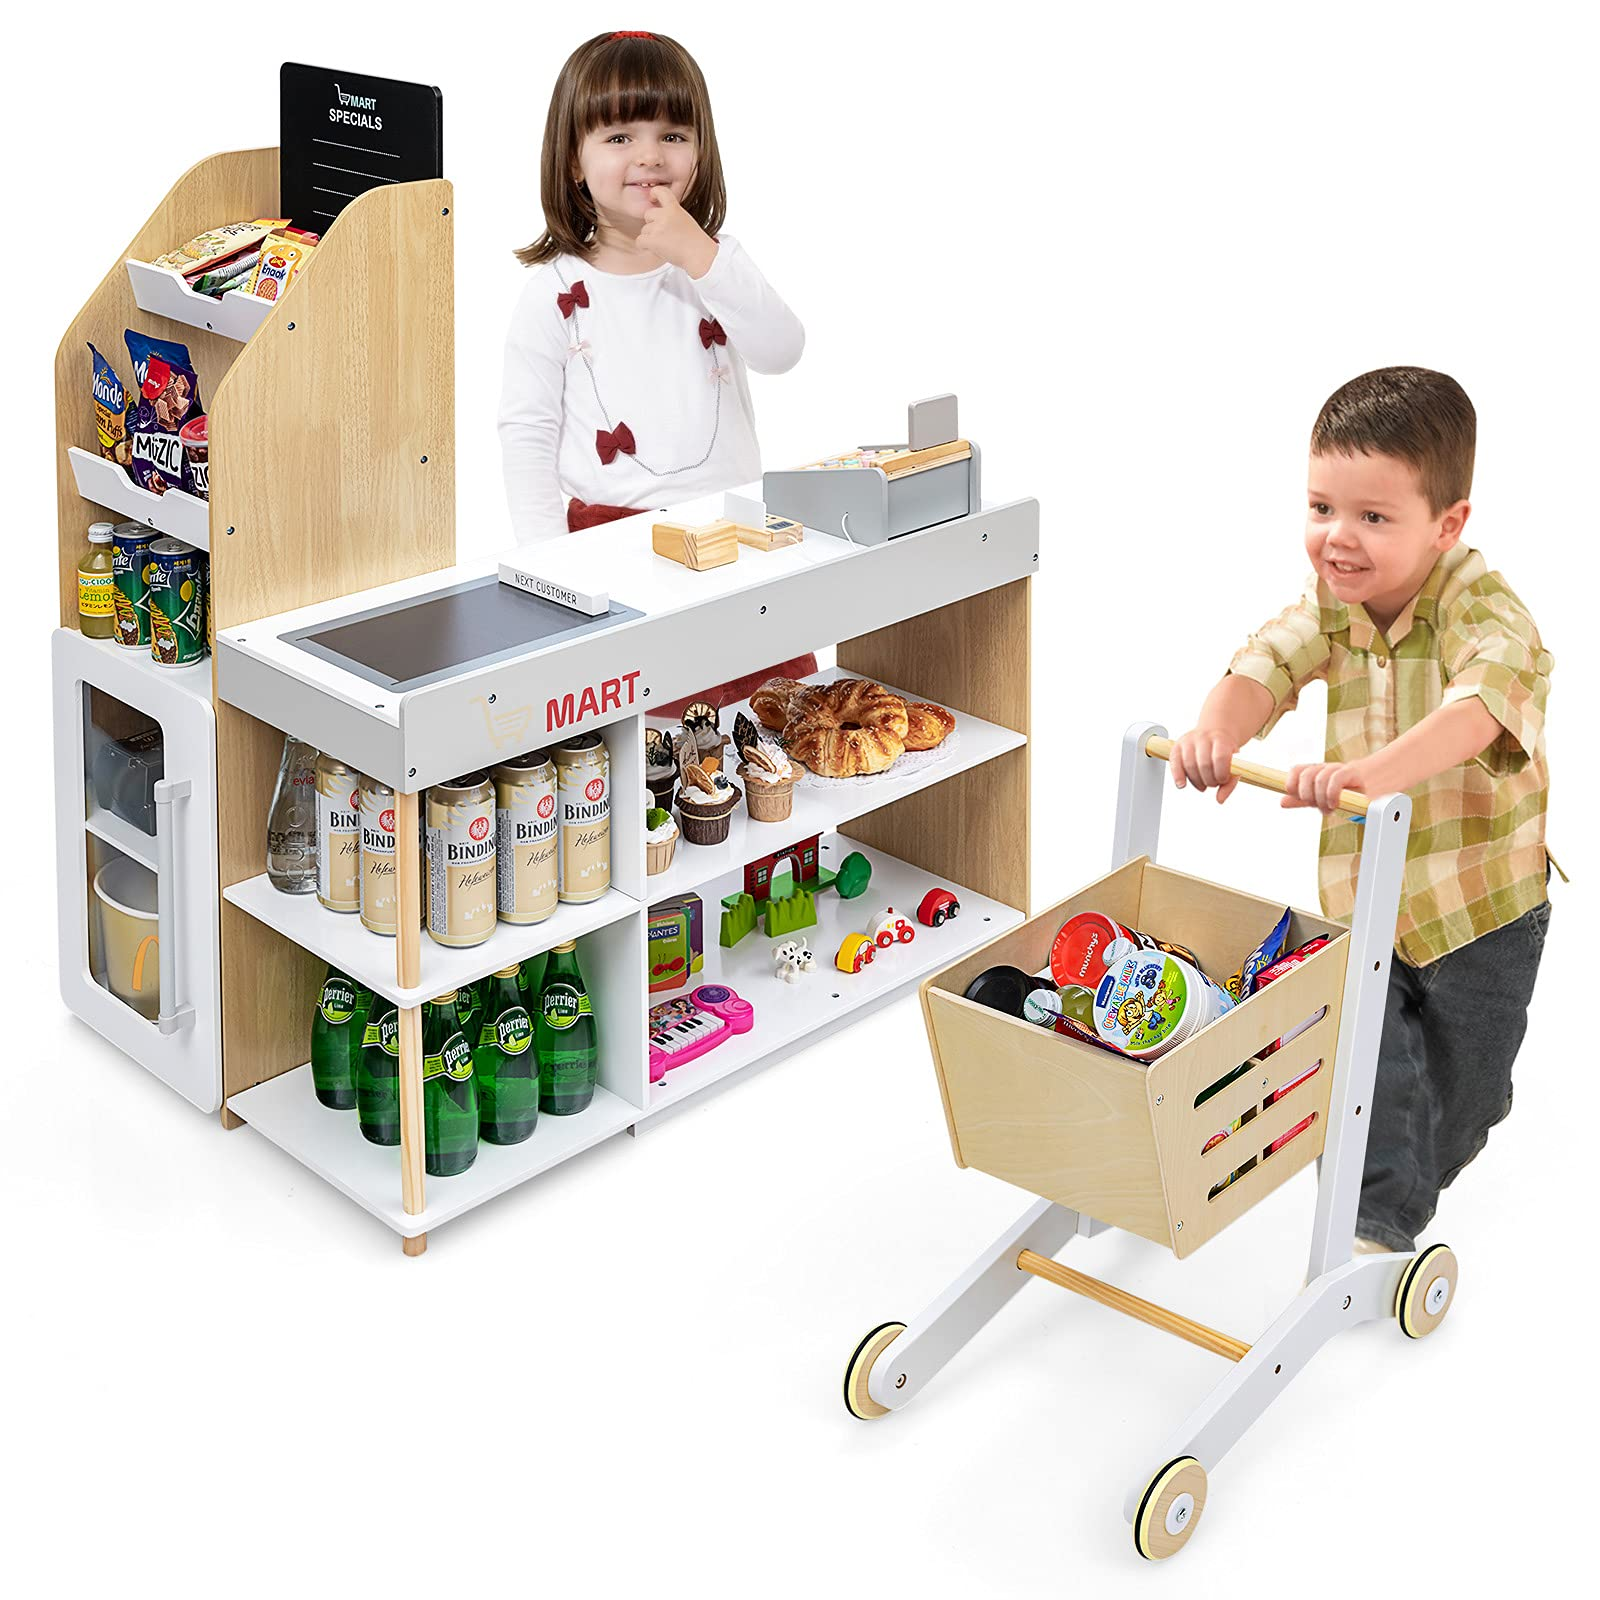 Costzon Pretend Grocery Store Playset, Supermarket Play Toy with Shopping Cart, Scanner, Register, Credit Card, 5 Wooden Coins, Cashier Pretend Play for Kids Toddlers (Play Food Set are not Included)